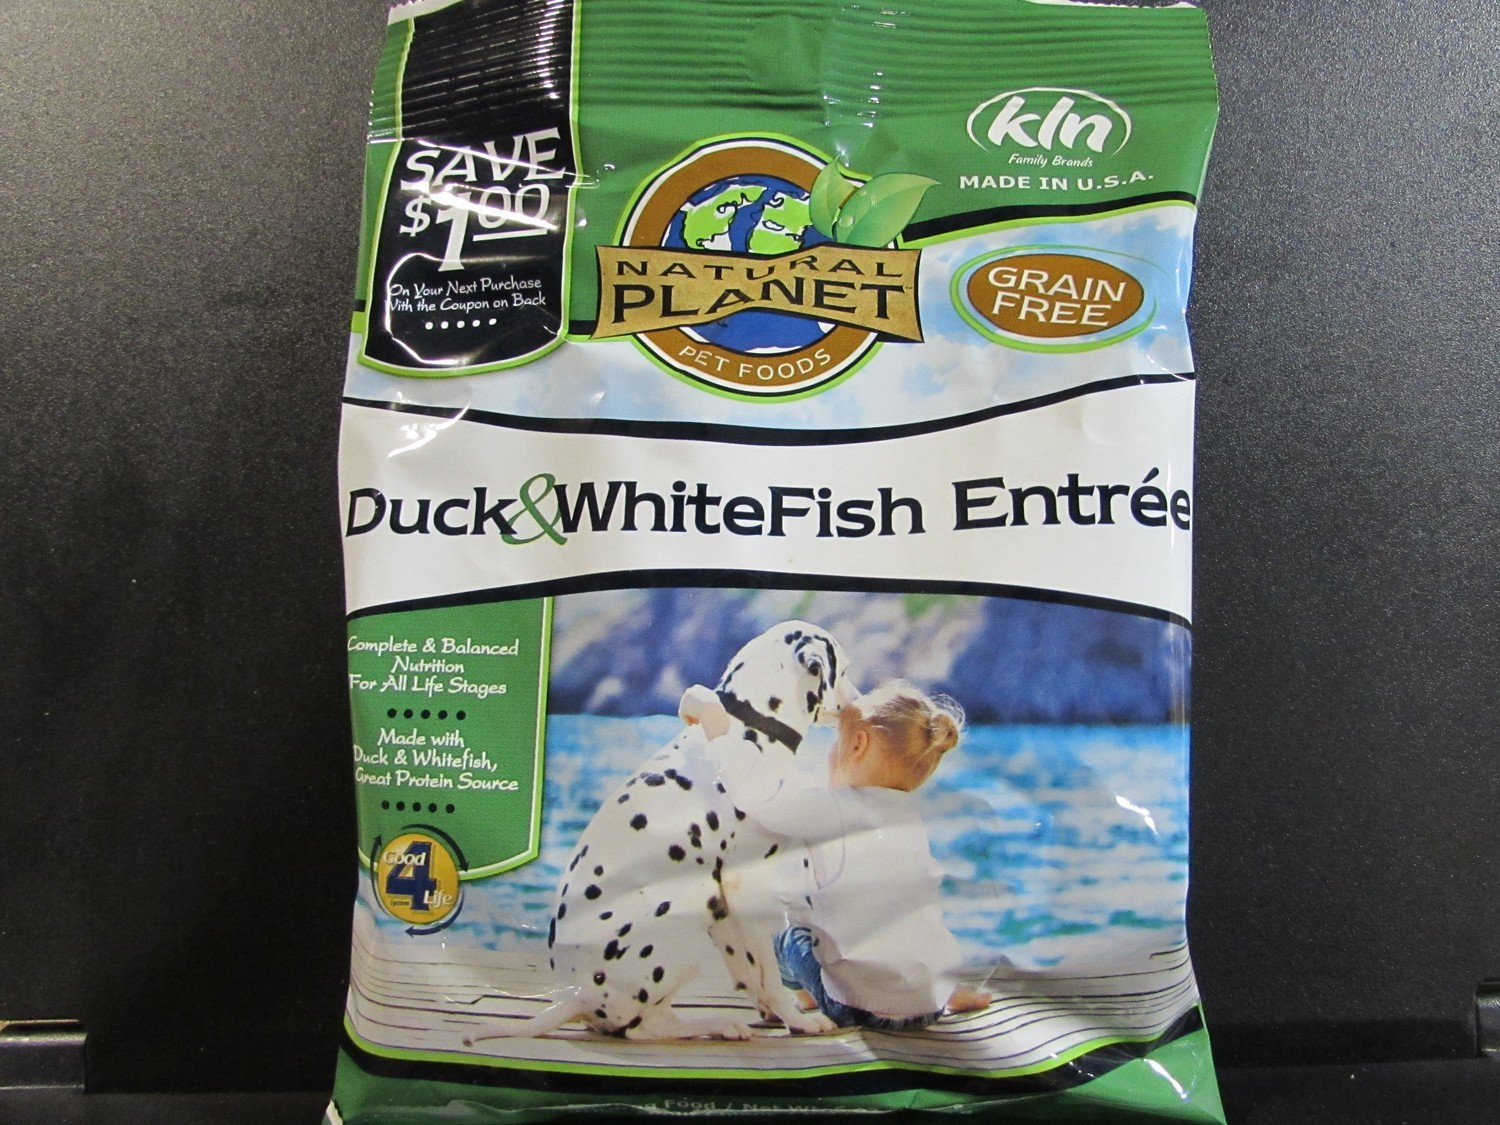 NATURAL PLANET DUCK & WHITEFISH ENTREE 6 OZ (5/18) (A.P1)